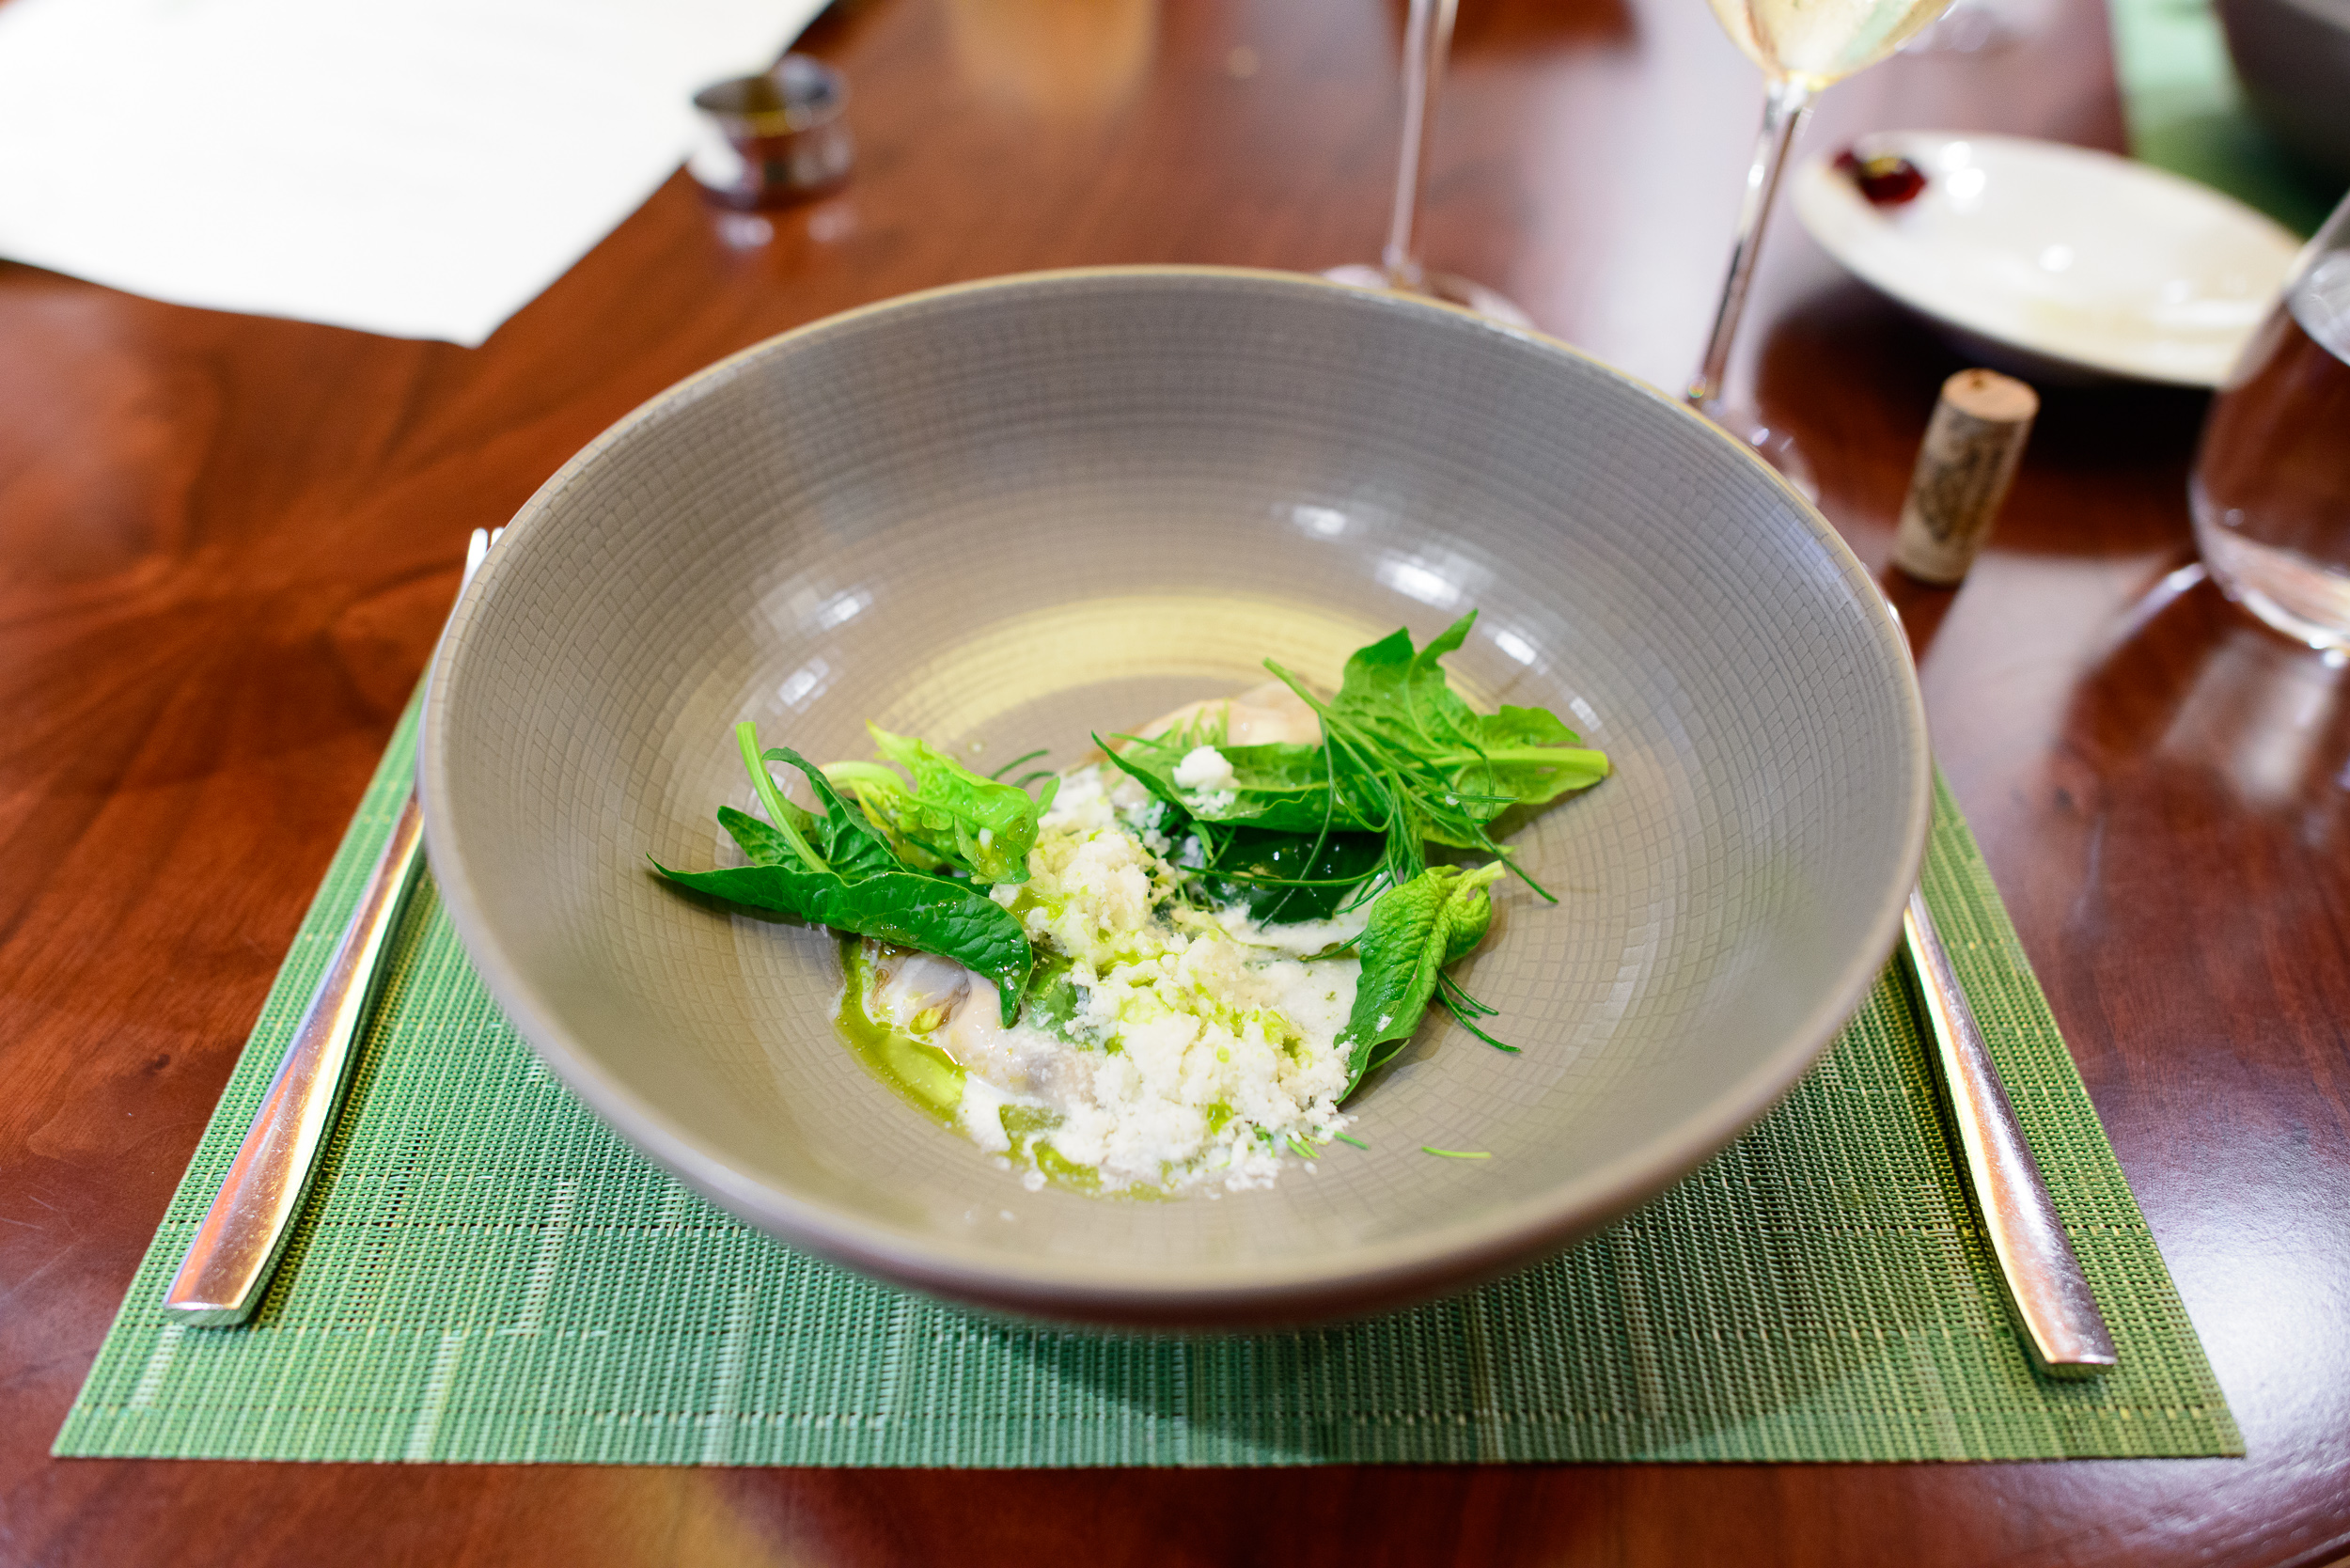 Back cove oyster, new spruce, spinach, an infusion of seaweeds, radish, and milk / John Shields